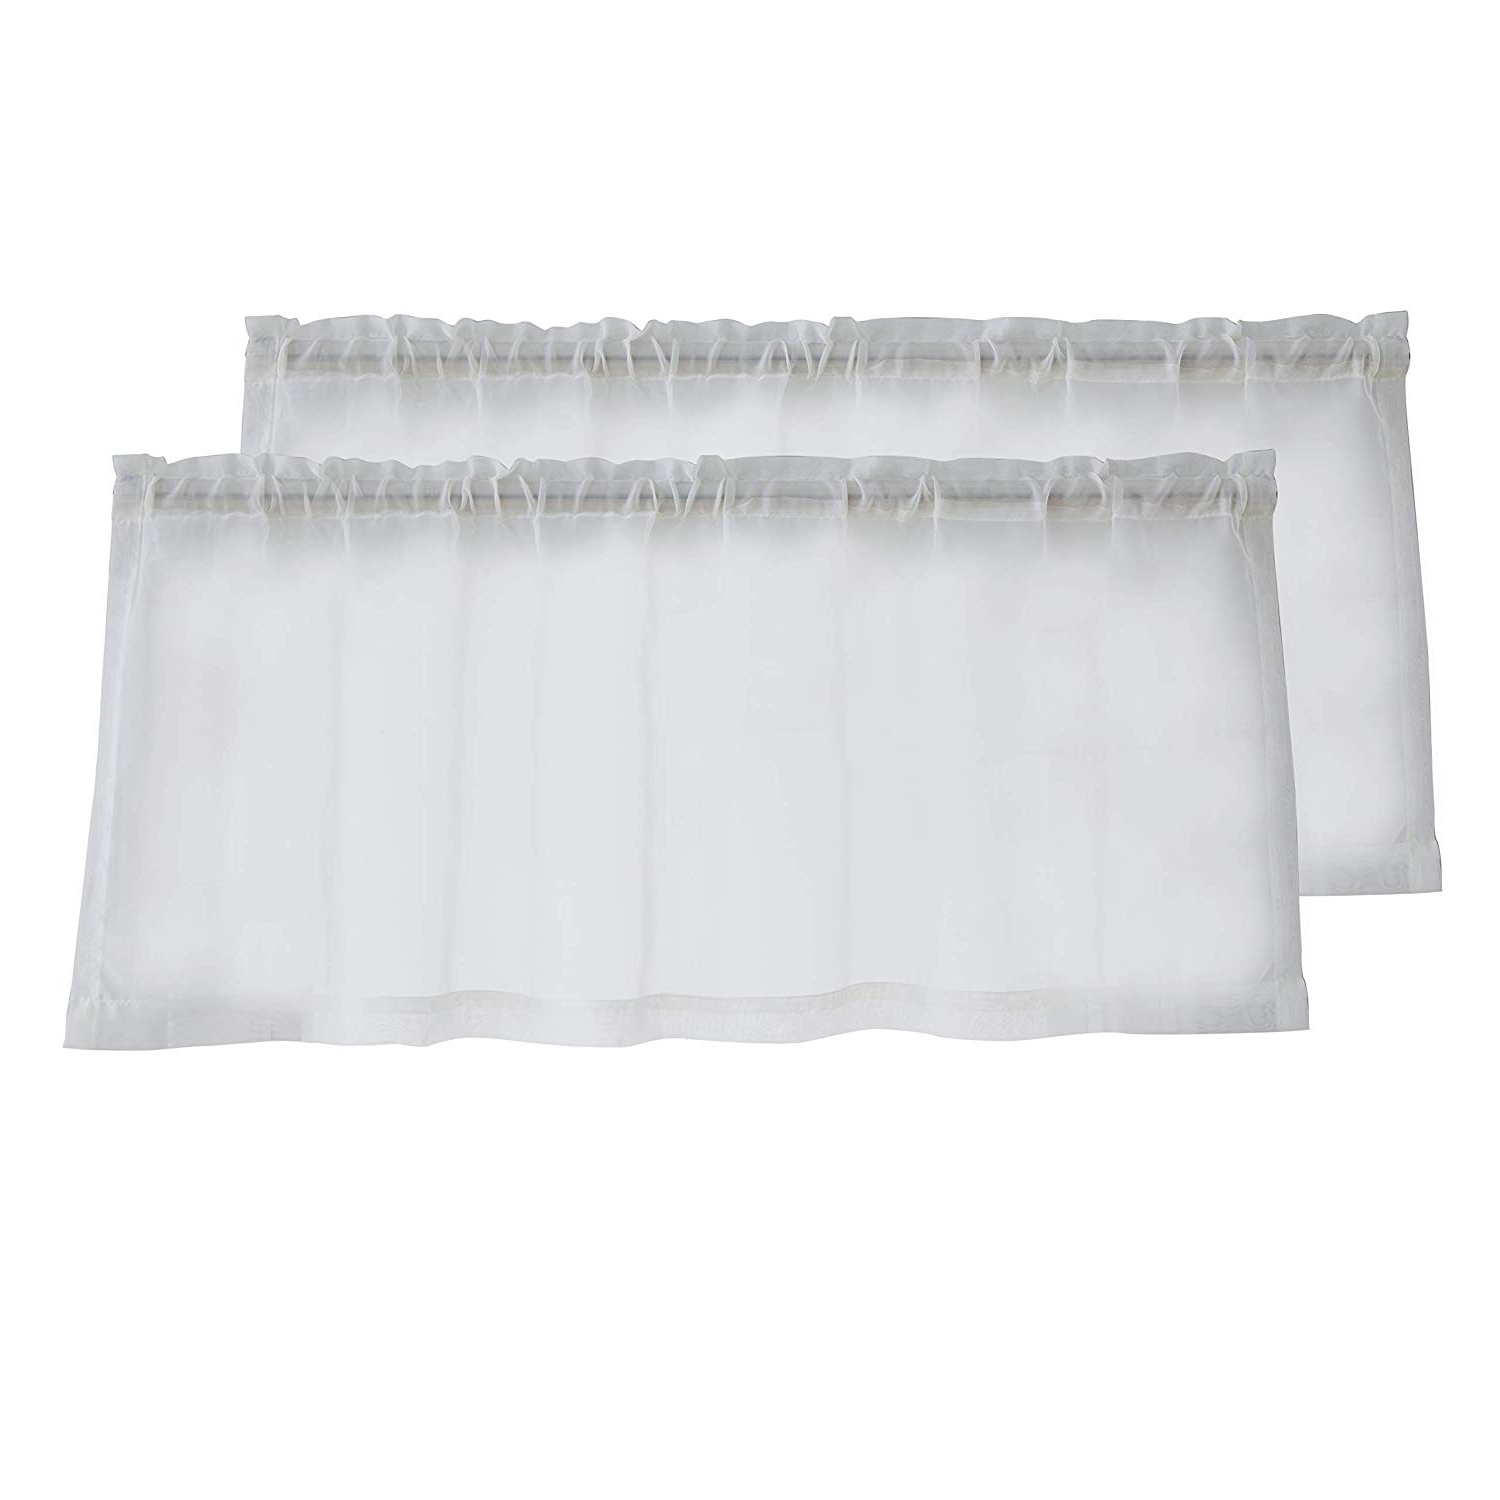 "Widely Used Sheer Voile Ruffled Tier Window Curtain Panels Pertaining To Buy Hlc Ivory 50"" X 18"" Inch Length Café Tier Valance (View 19 of 20)"